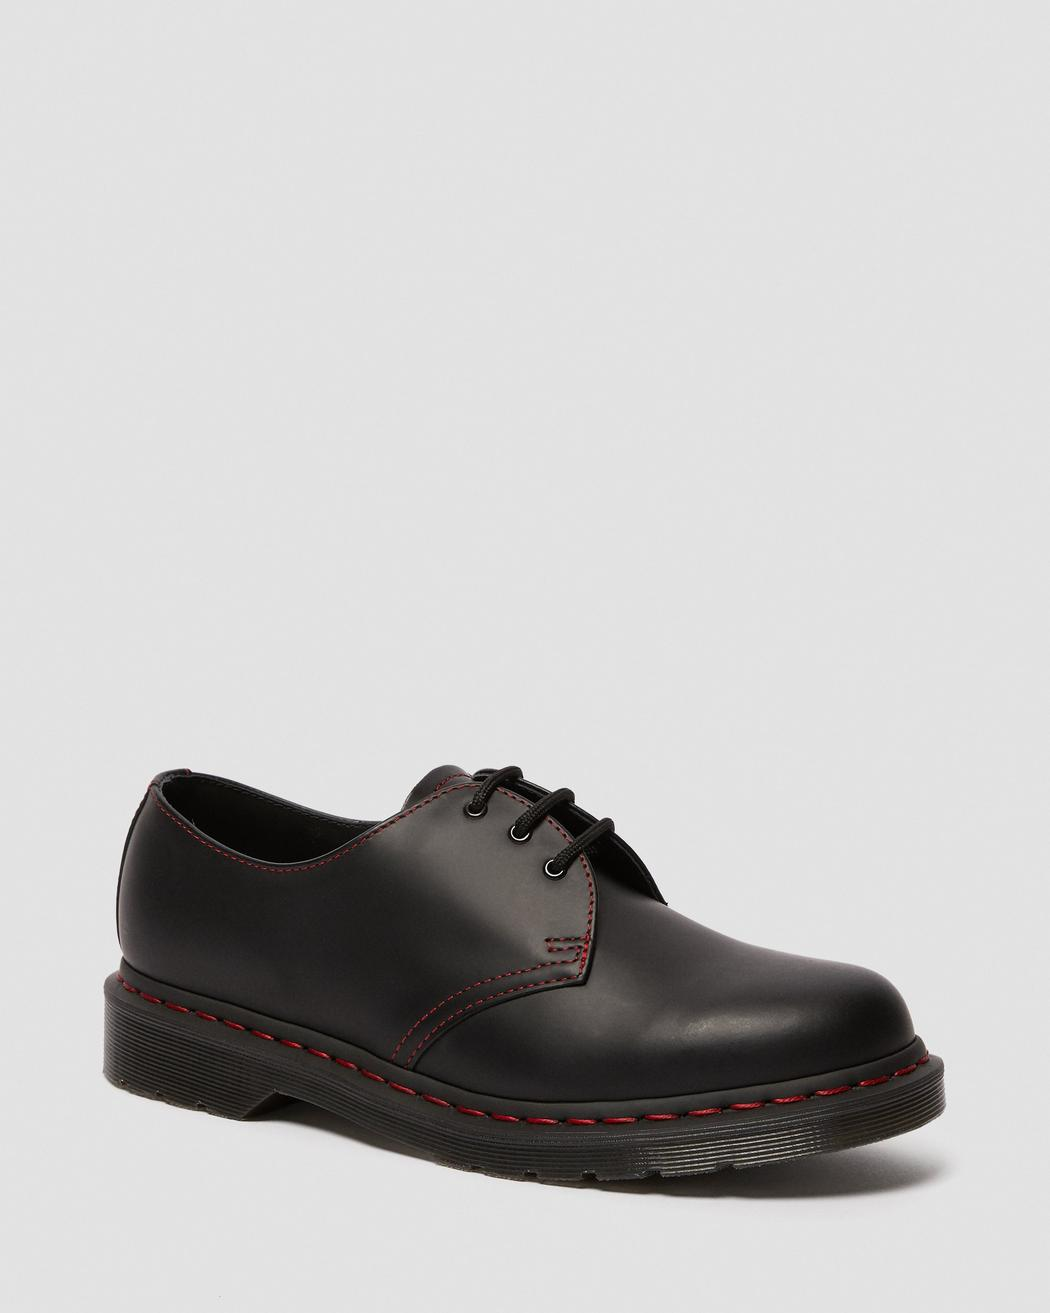 1461 CONTRAST STITCH SMOOTH LEATHER OXFORD SHOES